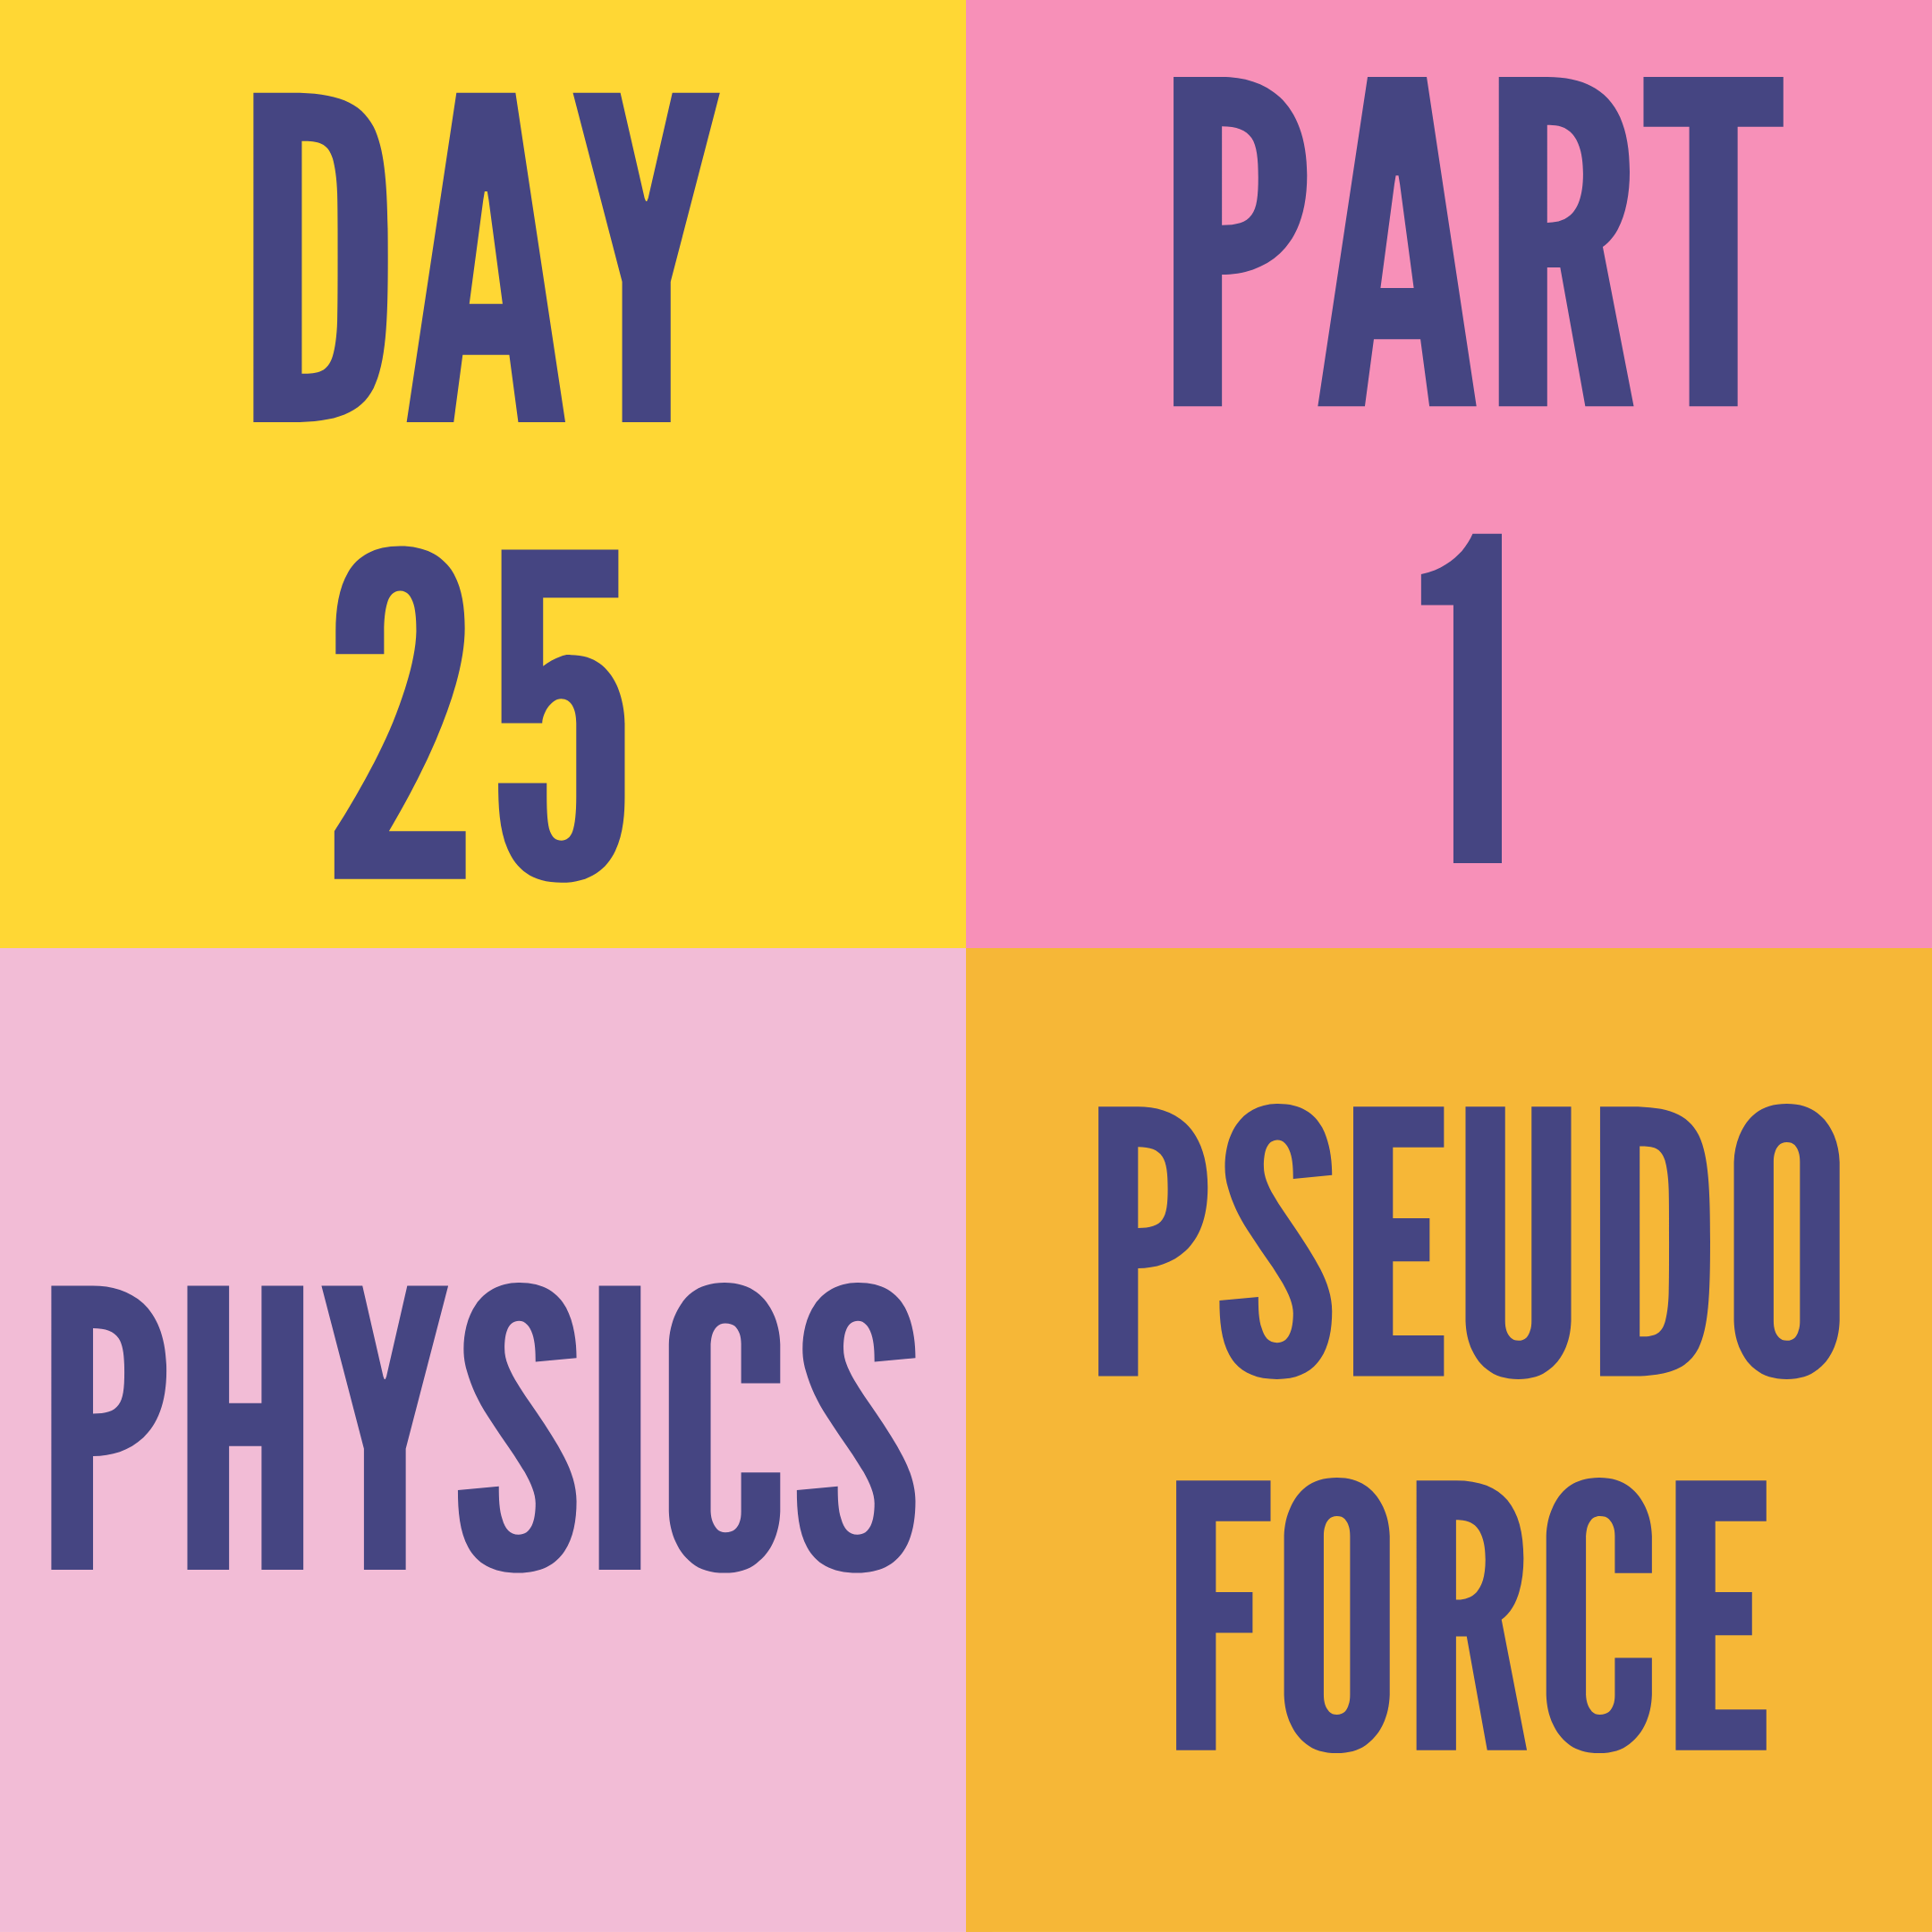 DAY-25 PART-1 PSEUDO FORCE